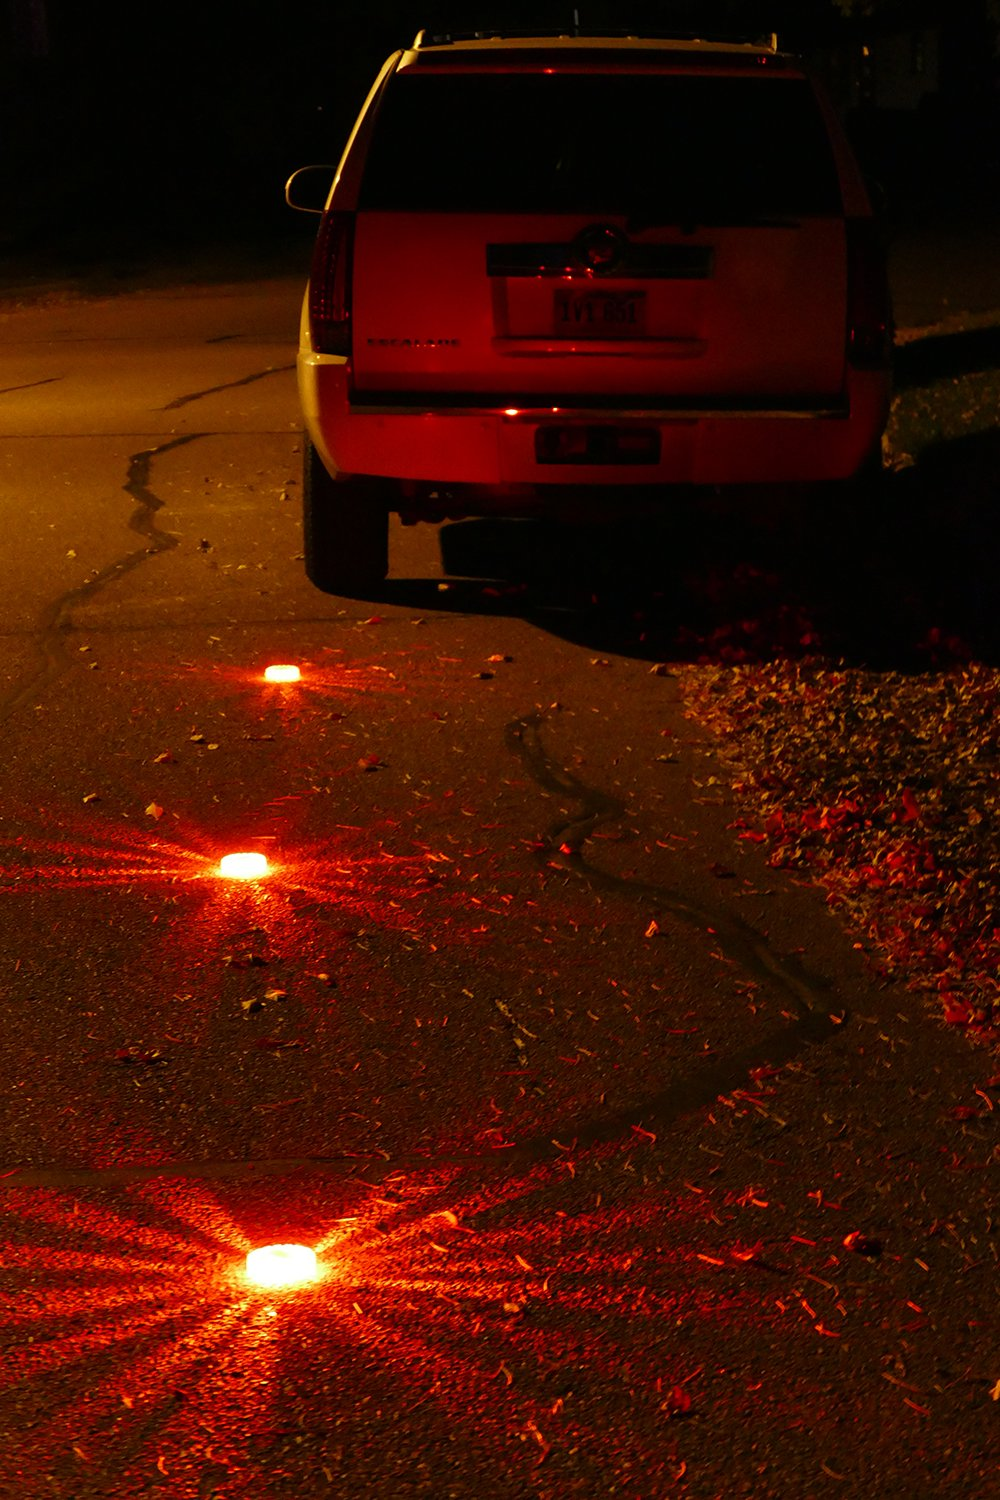 Abn Portable 16 LED Safety Flare Signal Light with 9 Warning Light Modes 3-Pack in Red for Roadside or Marine Emergency